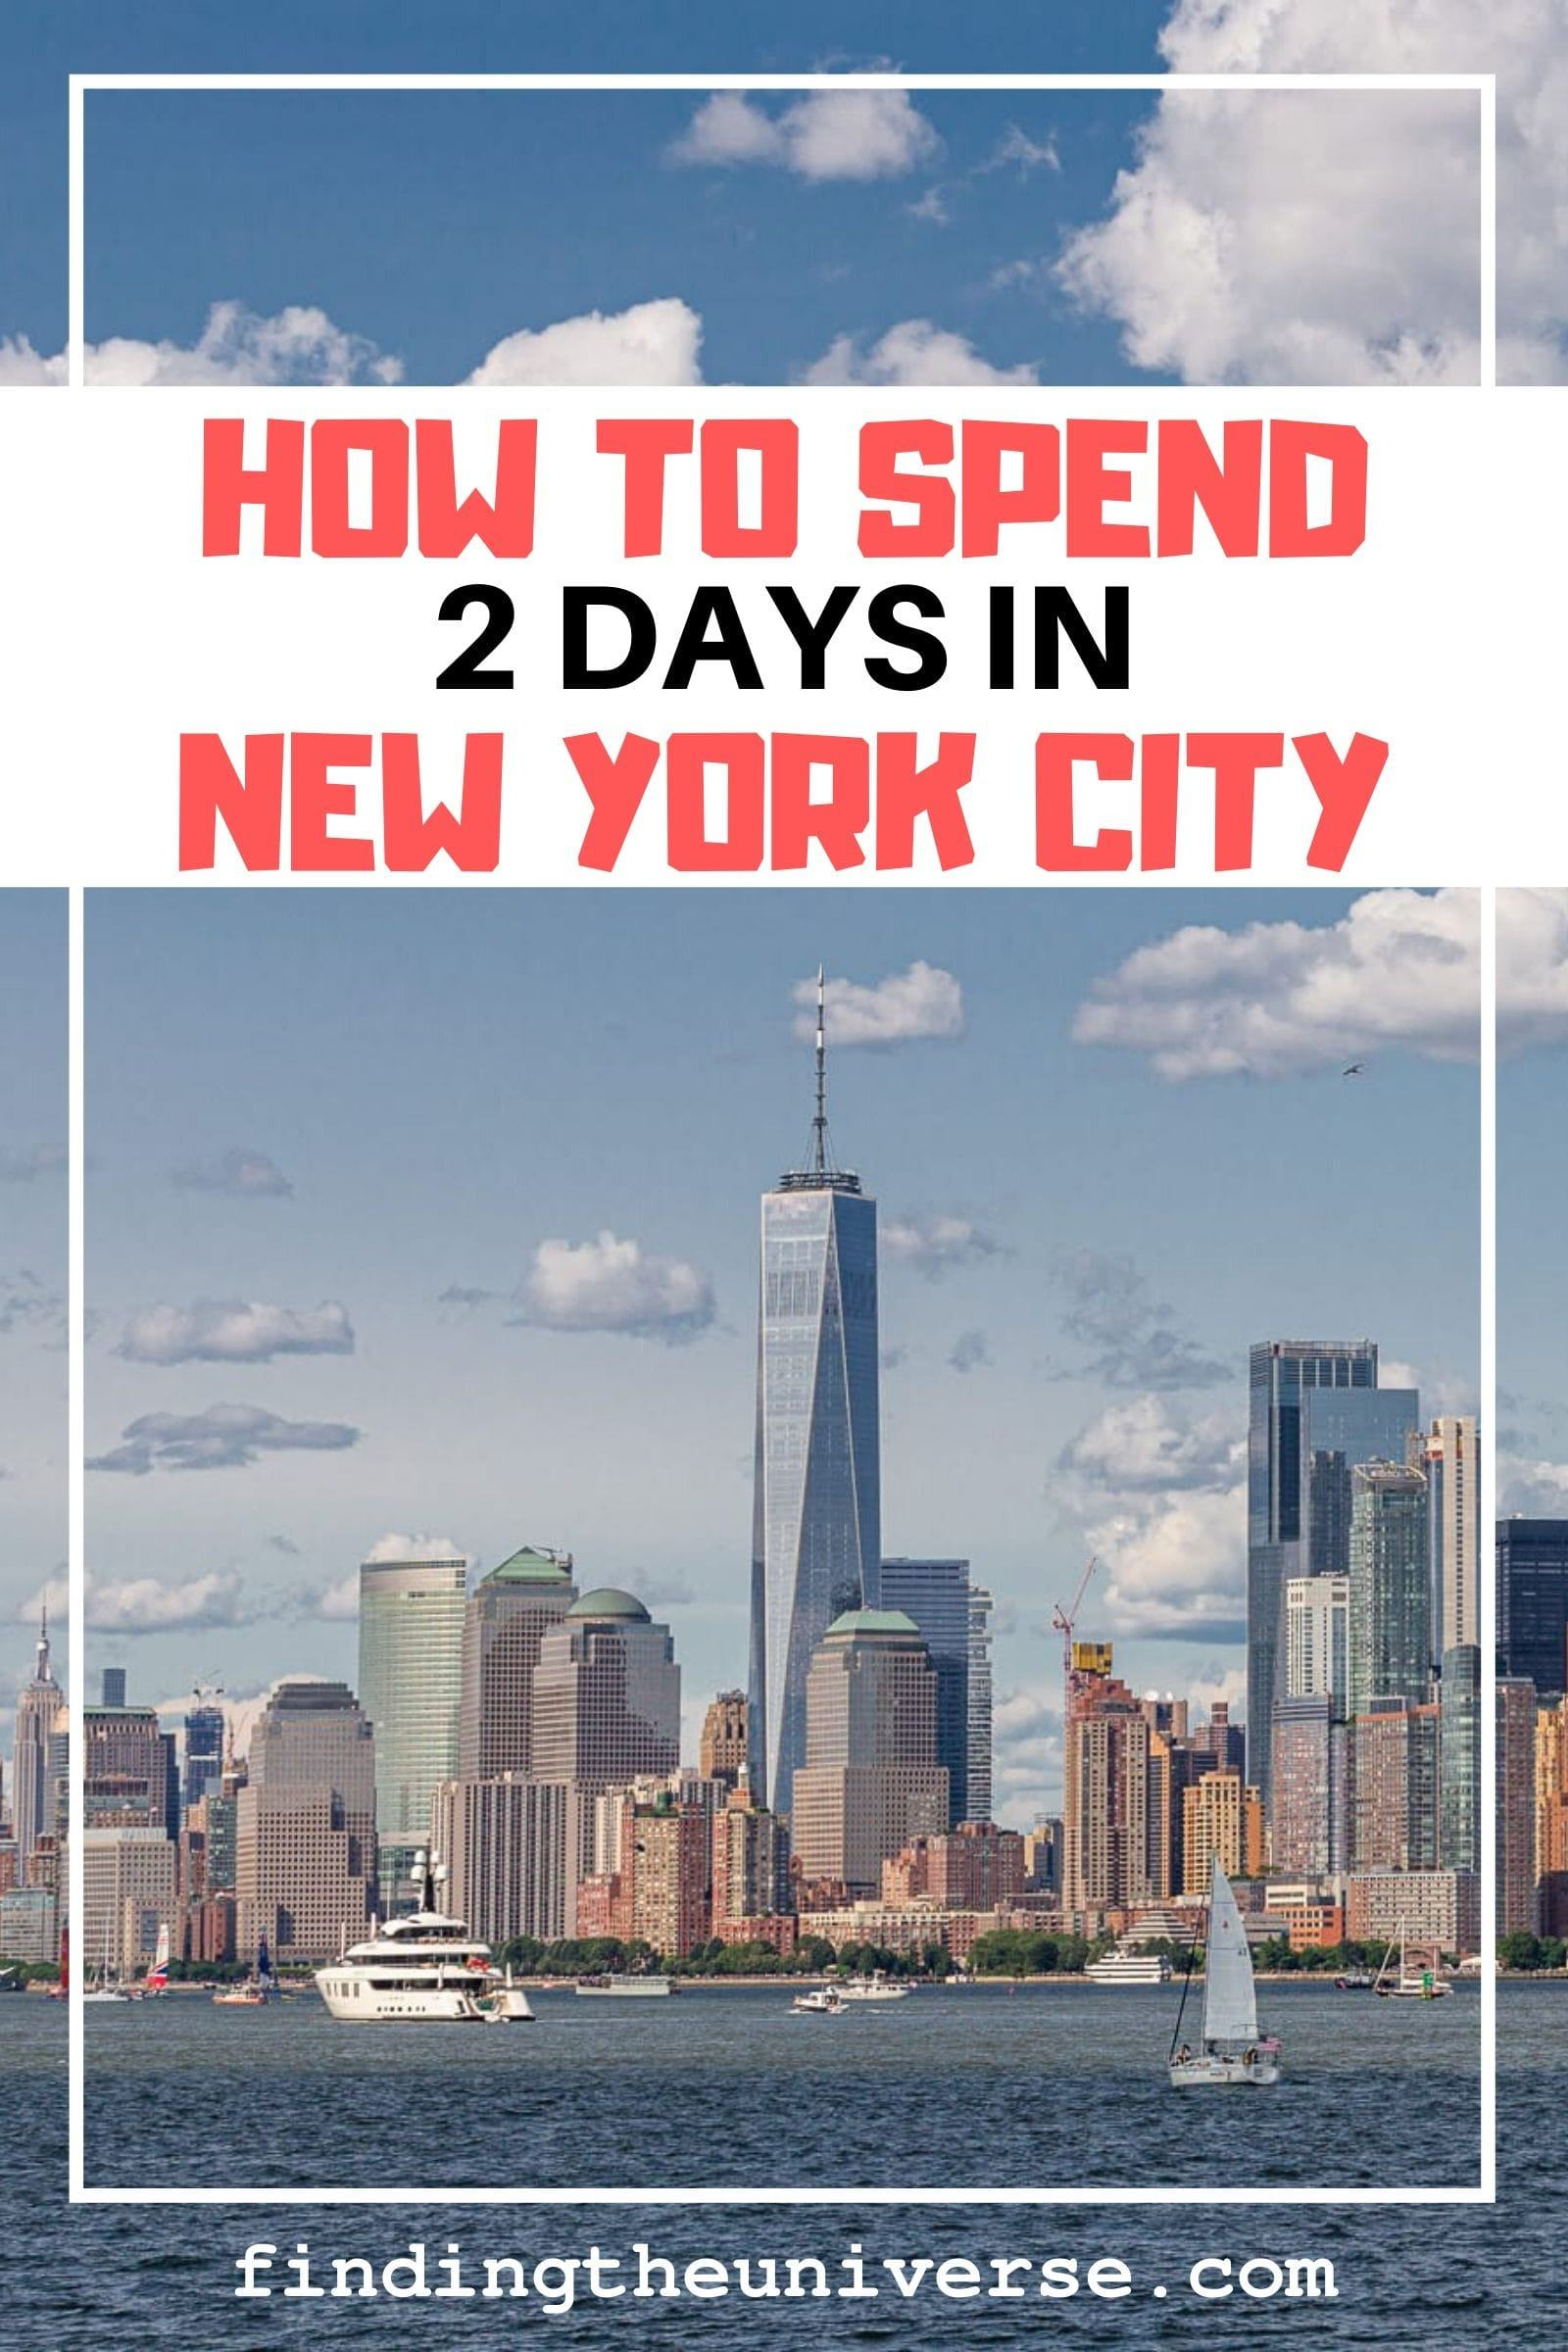 Detailed itinerary for 2 days in New York. Includes what to see in New York over 2 days, plus tips on getting around, accommodation and saving money!